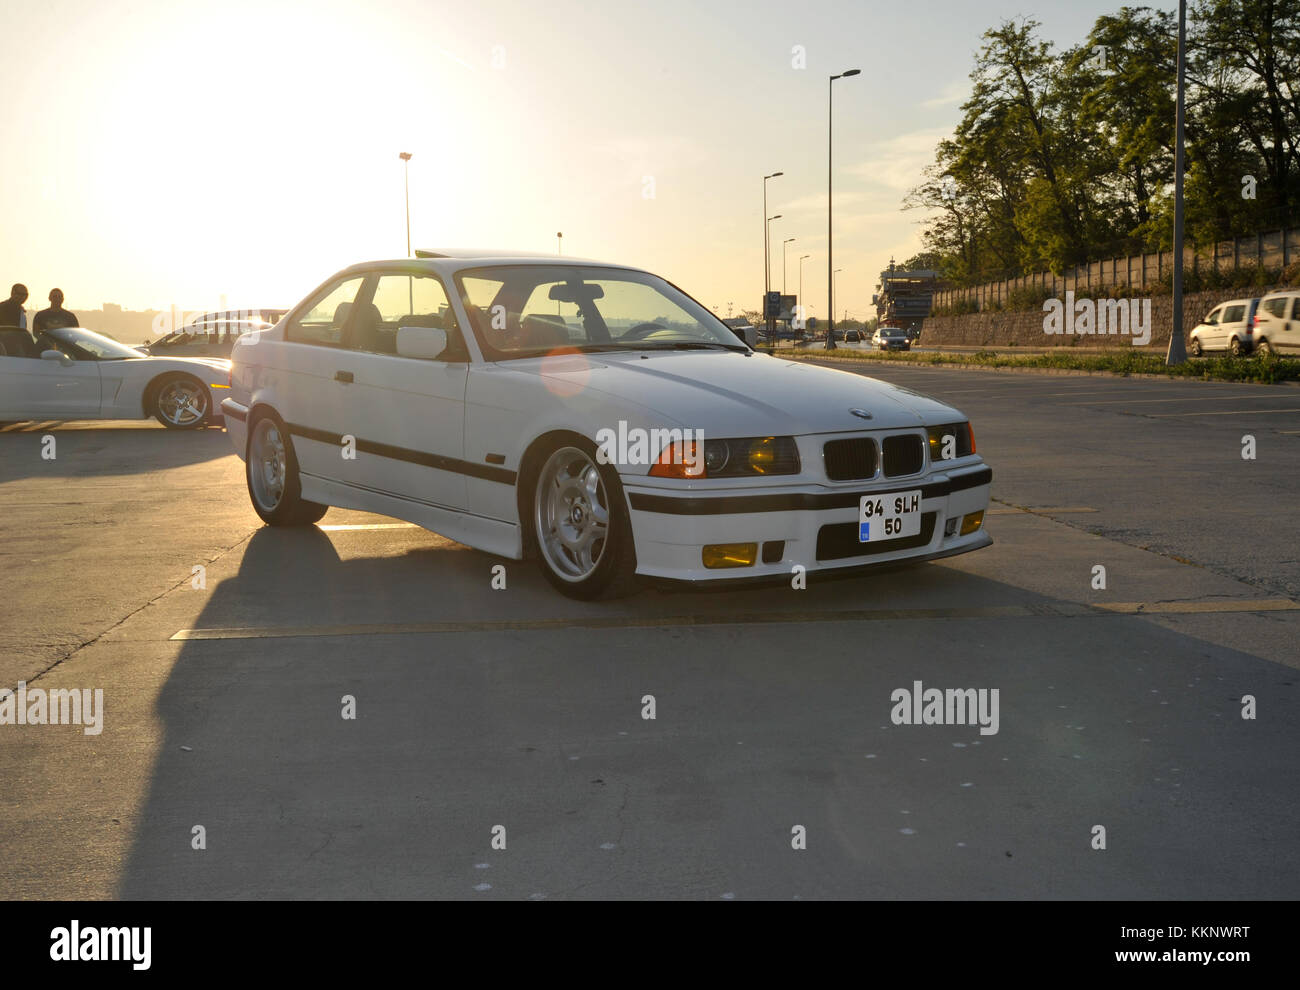 Modified Bmw E36 3 Series Coupe Lowered On M3 Wheels Stock Photo Alamy